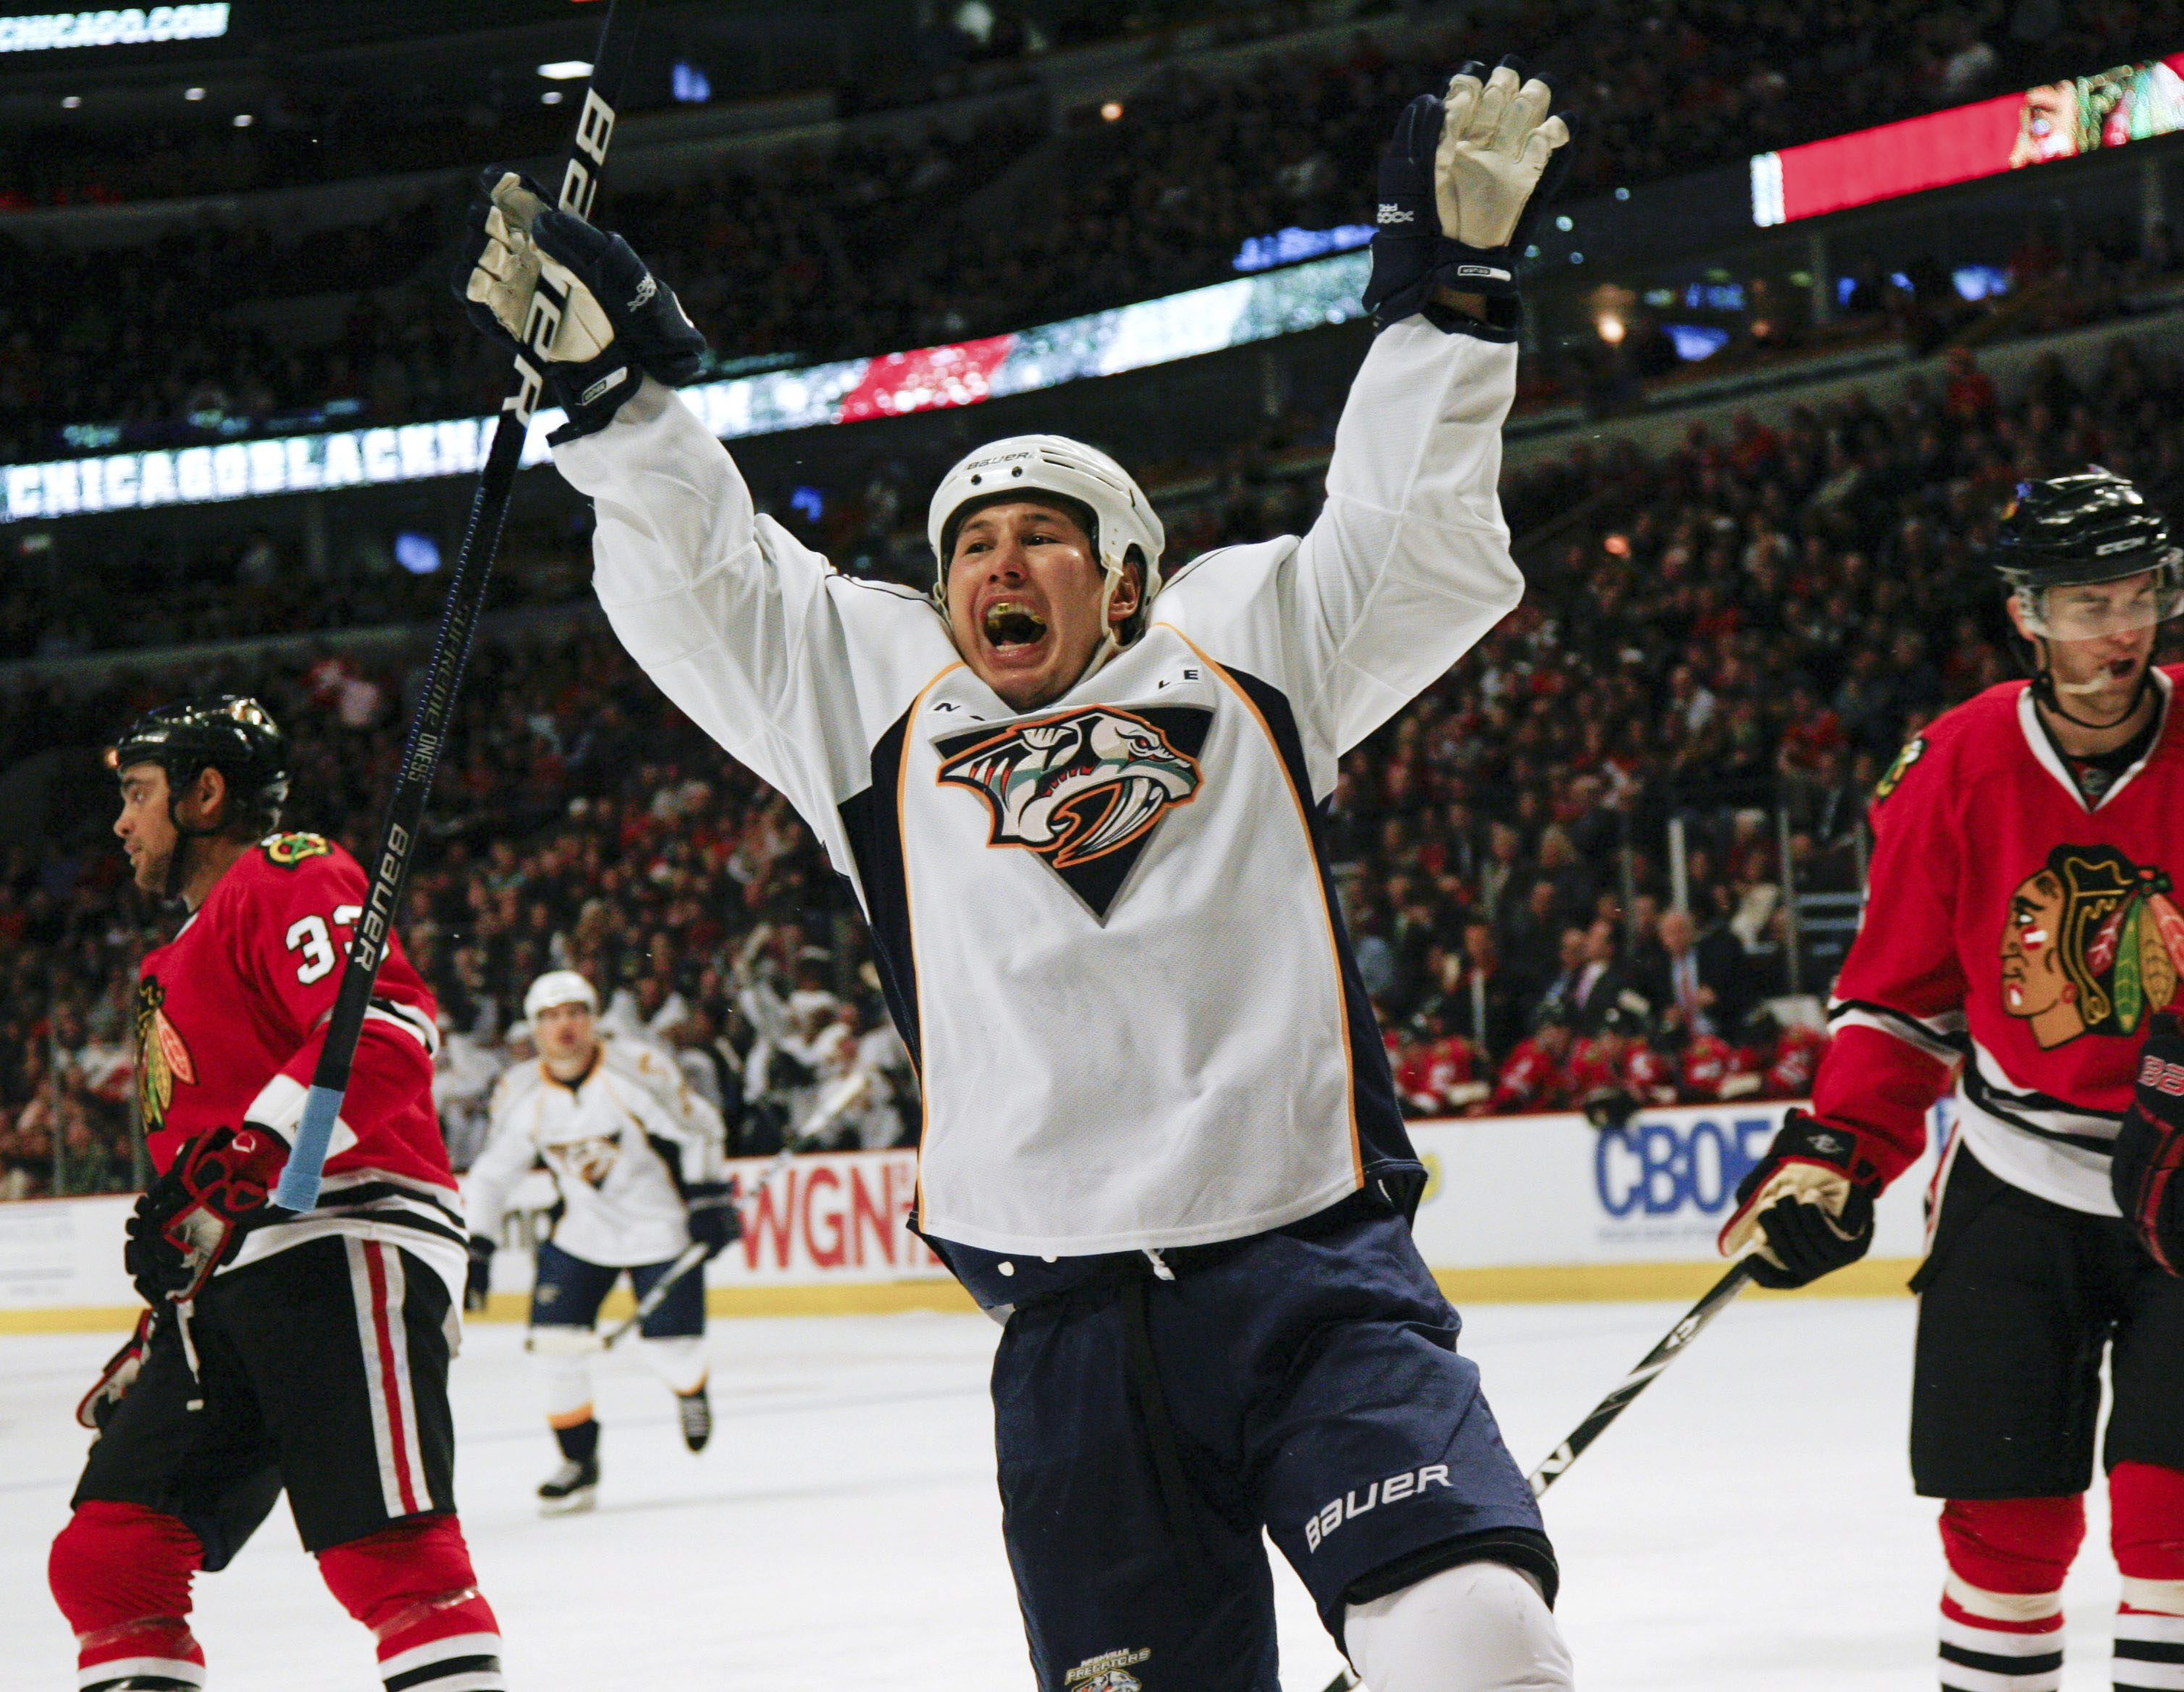 Jordin Tootoo celebrates goal while playing for the Nashville Predators on Friday, Dec. 4, 2009. Photo: Charles Cherney, AP Photo.